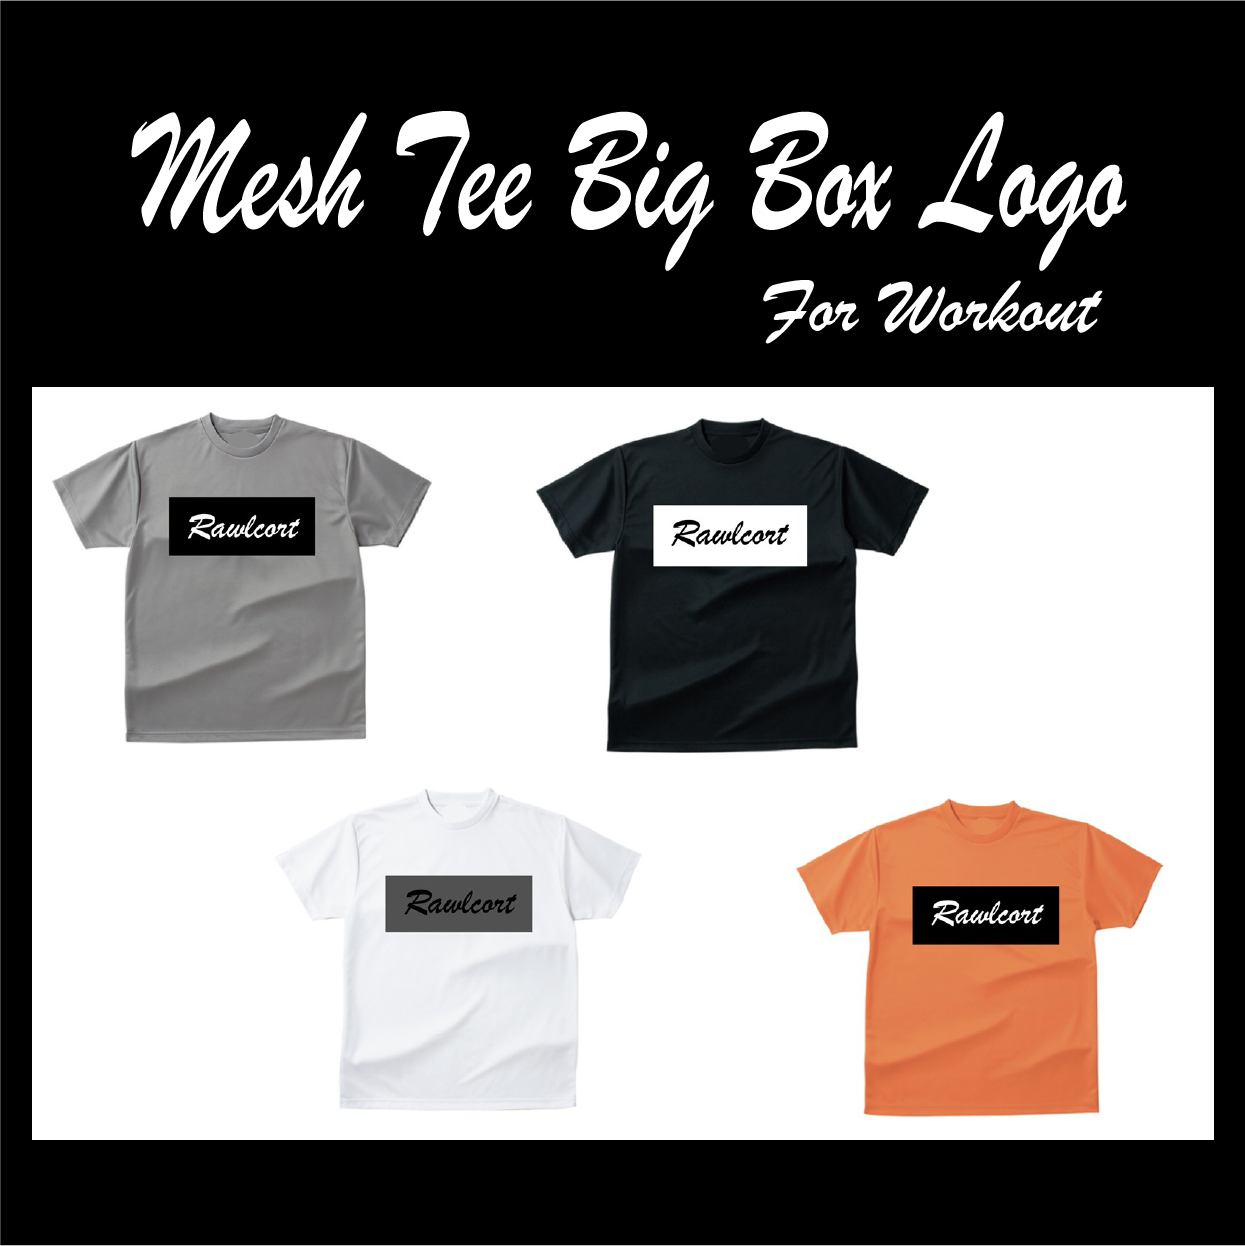 Mesh Tee Big Box Logo For  Workout